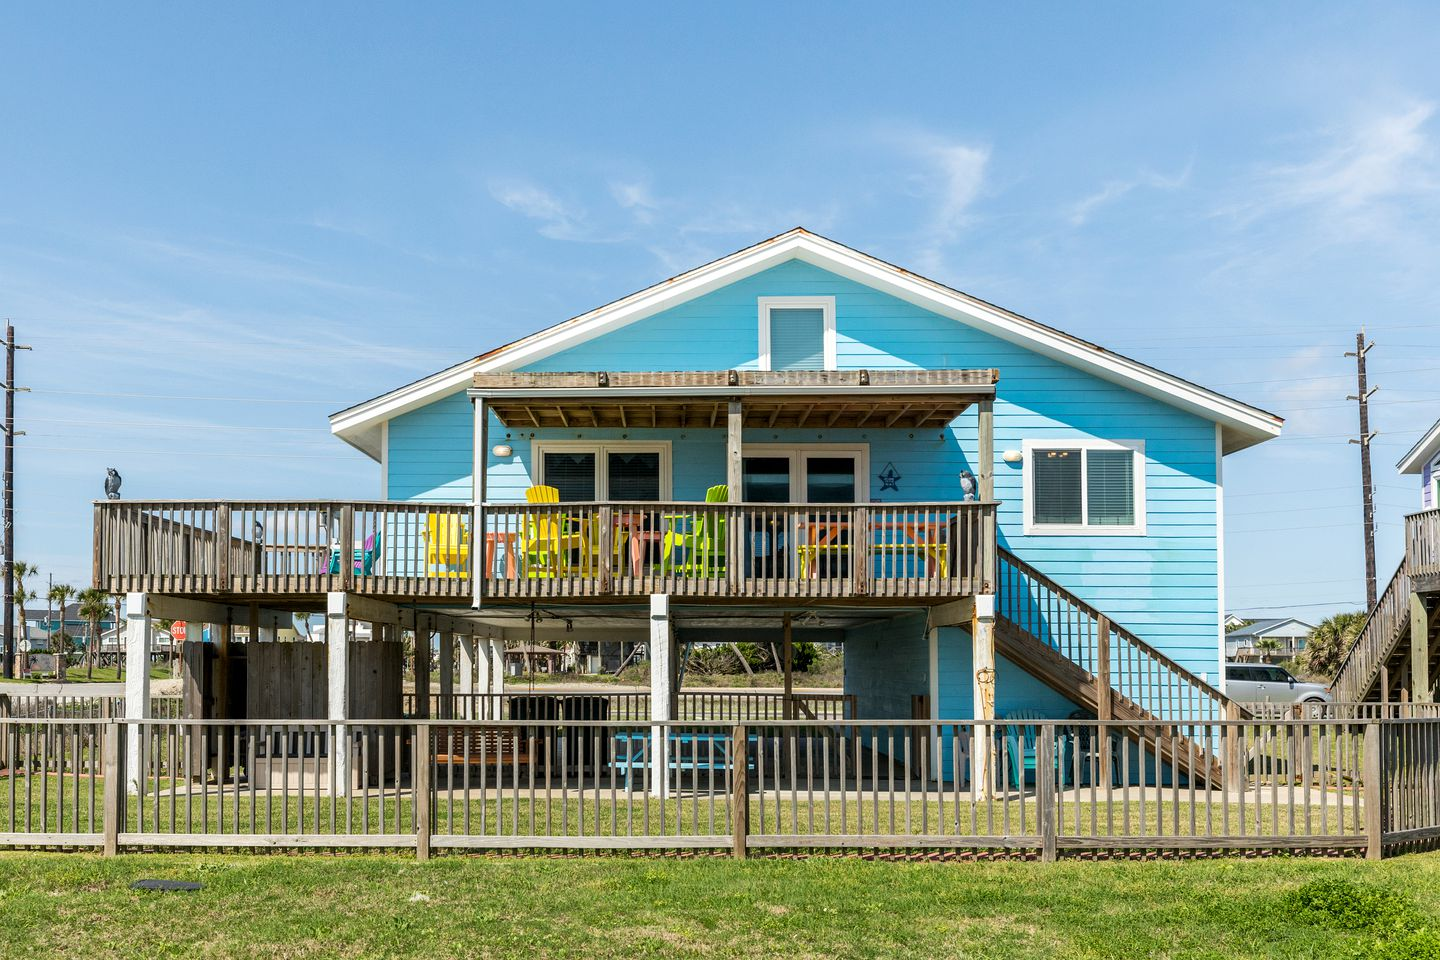 Galveston beach house rental with elevated deck and blue paneling.